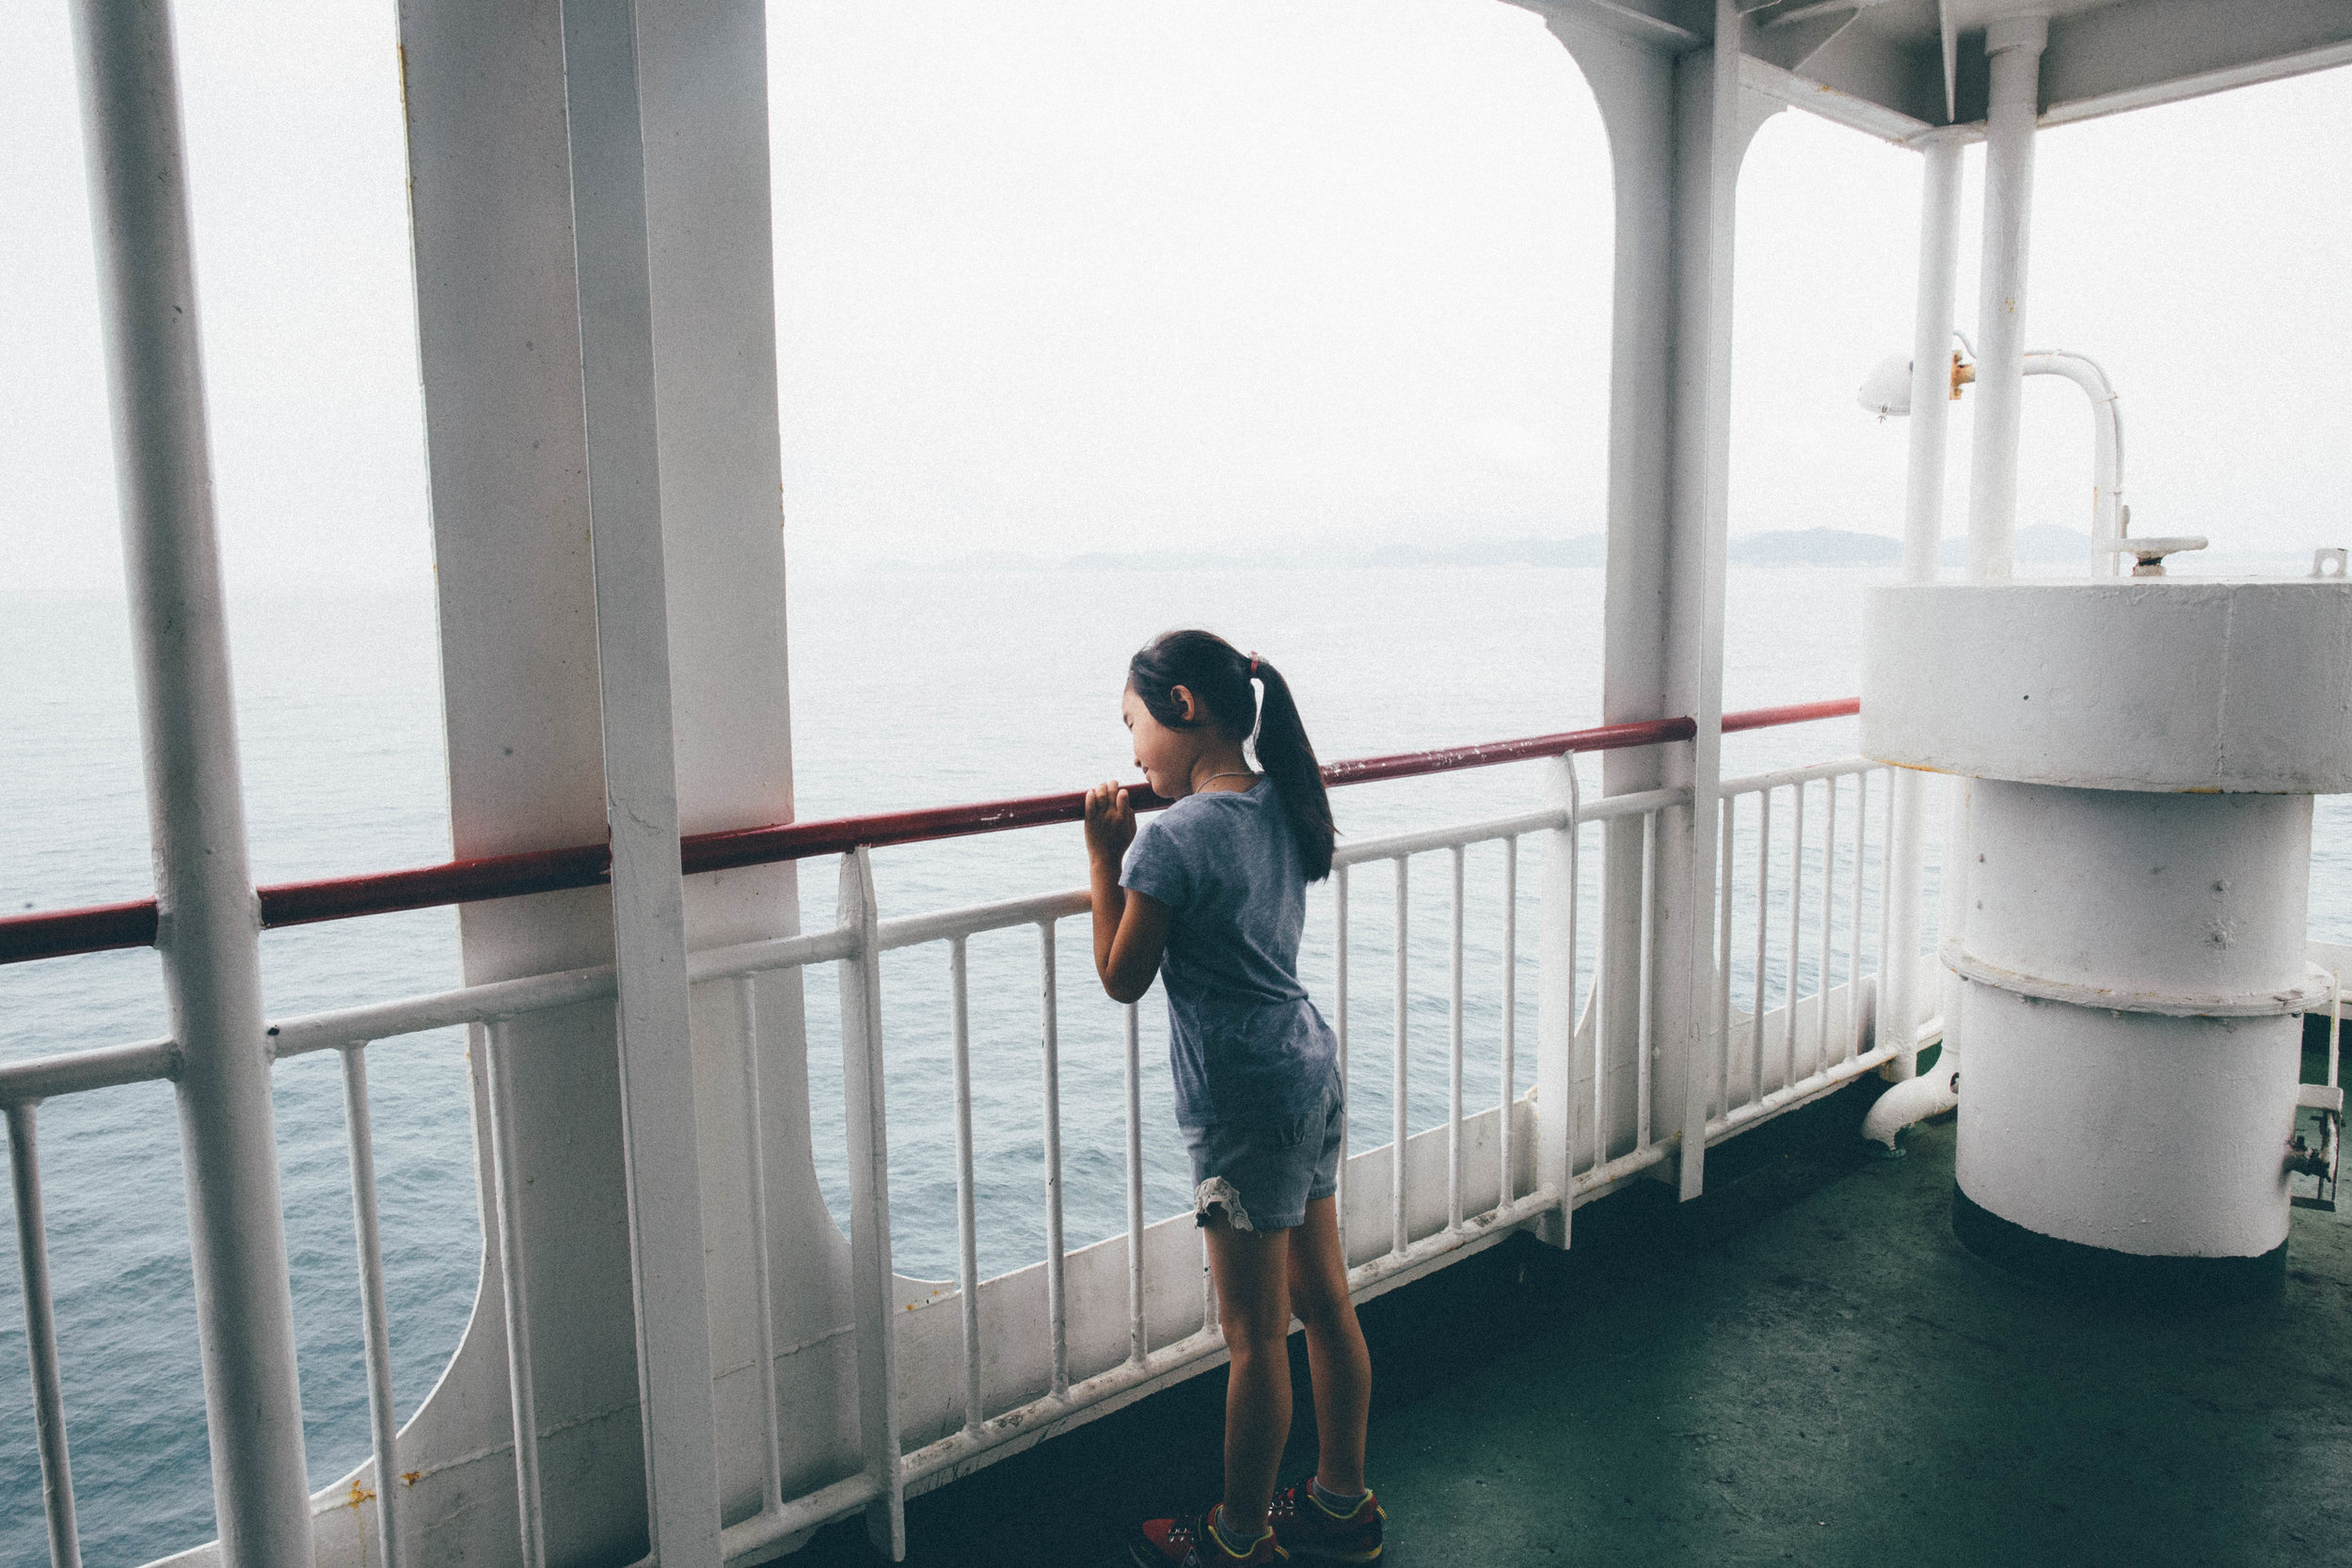 A young girl rides the Hanil Express Ferry to Jeju Island. Jeju-do, South Korea.